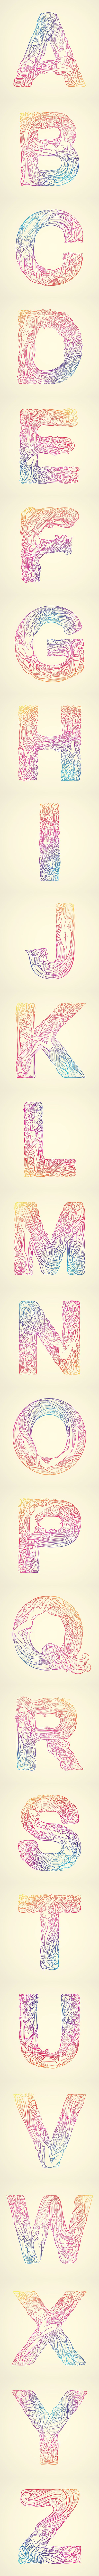 Whispered Garden Alphabets – ThuyMattit by Thuy Mat tit, via Behance